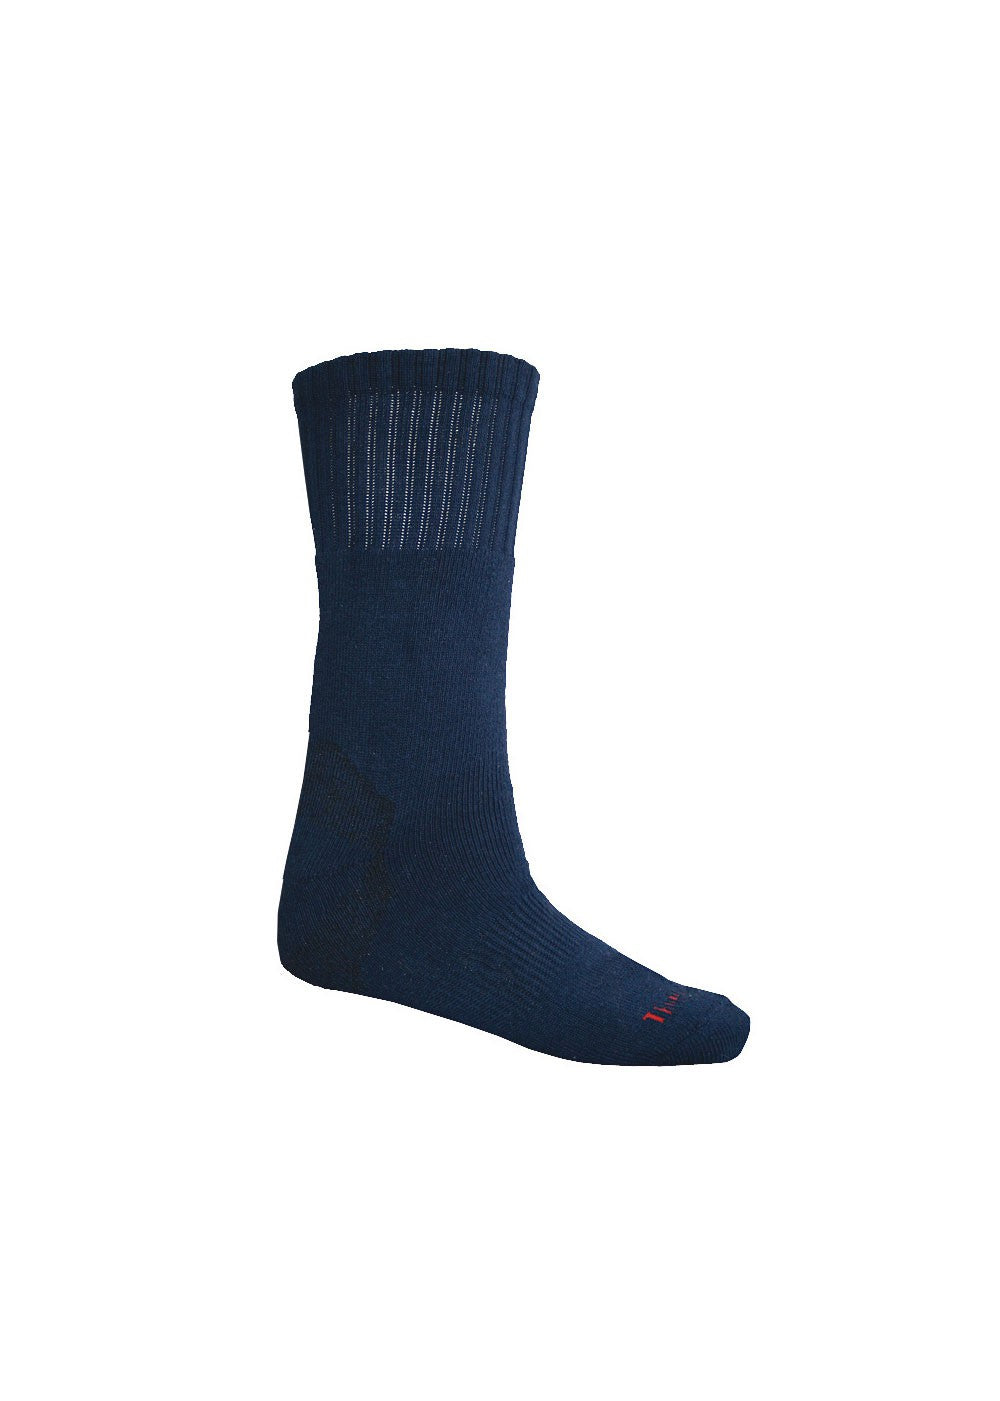 Twin Pack Mens Socks